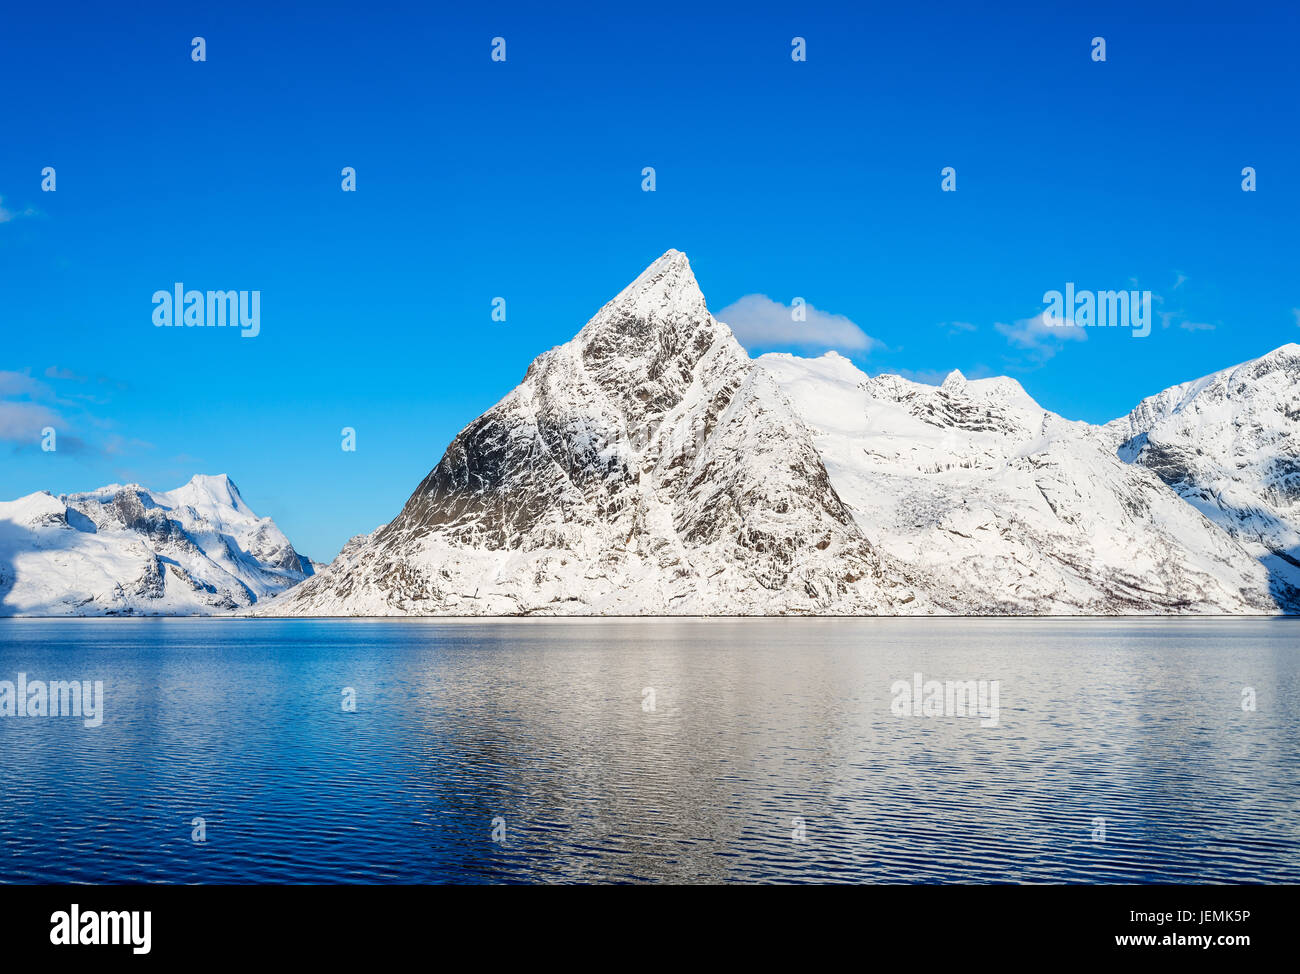 Mount Olstind reflected in the calm waters of Reinefjord on the Lofoten Islands Stock Photo